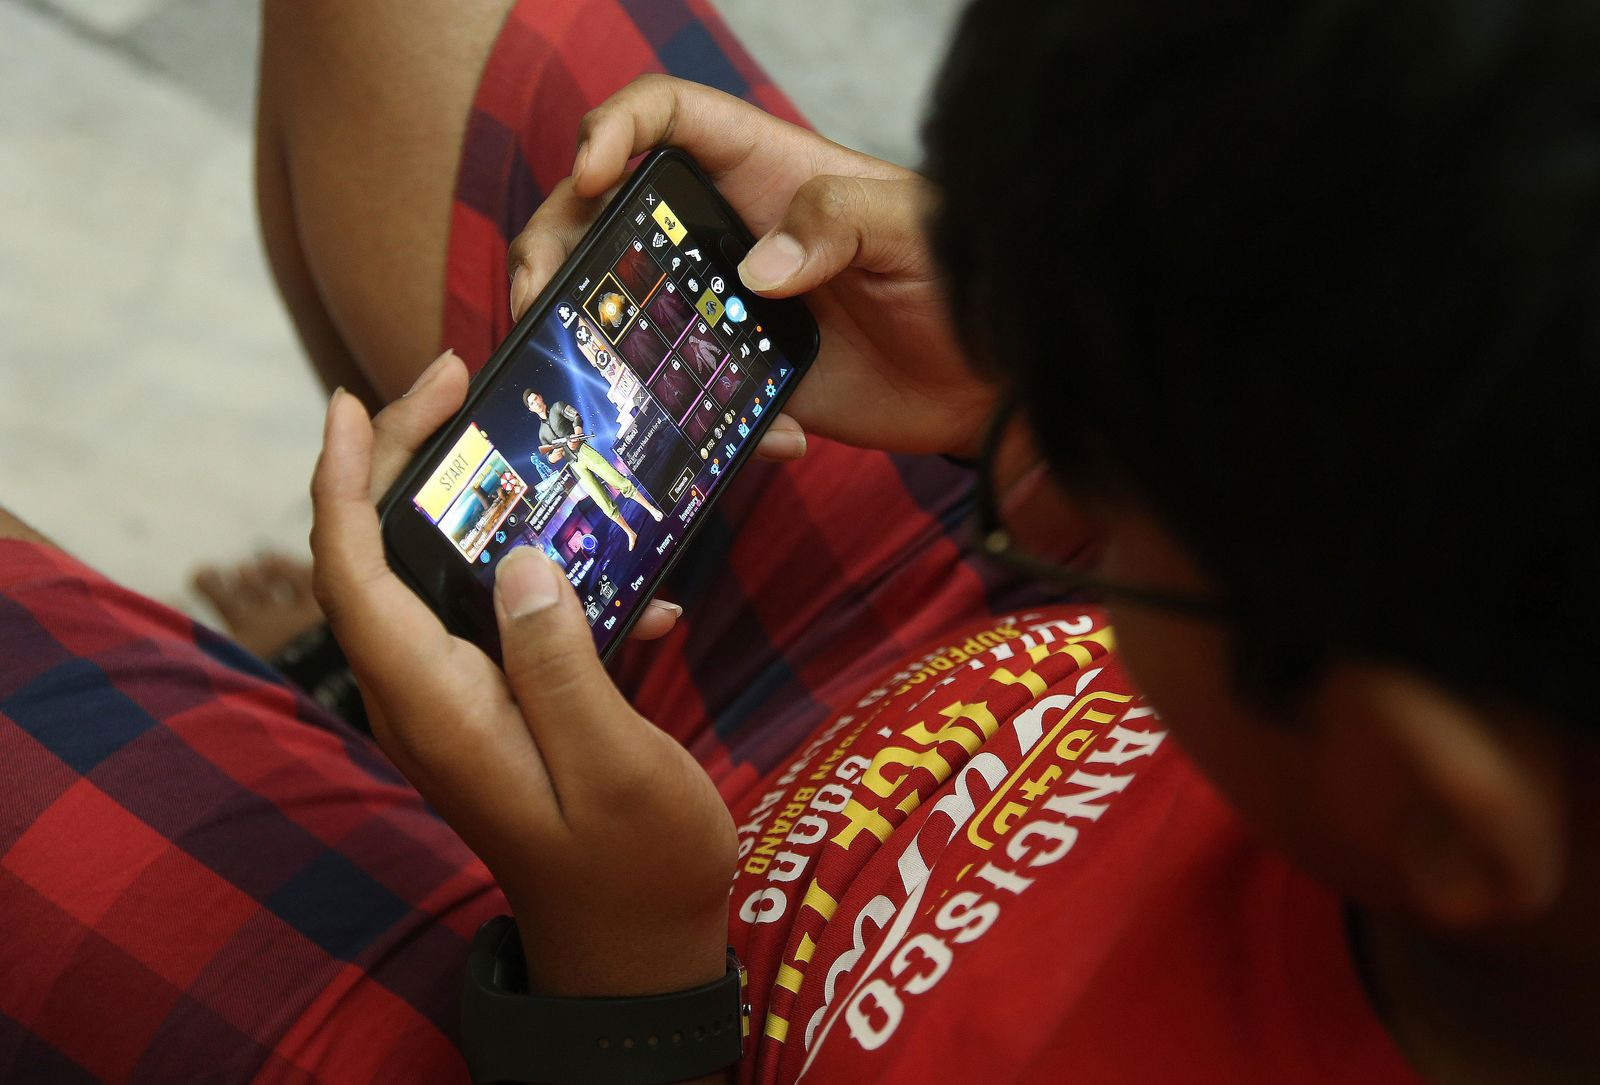 An Indian boy plays an online game PUBG on his mobile phone in Hyderabad, India, Friday, April 5, 2019.{ } (AP Photo/ Mahesh Kumar A.)